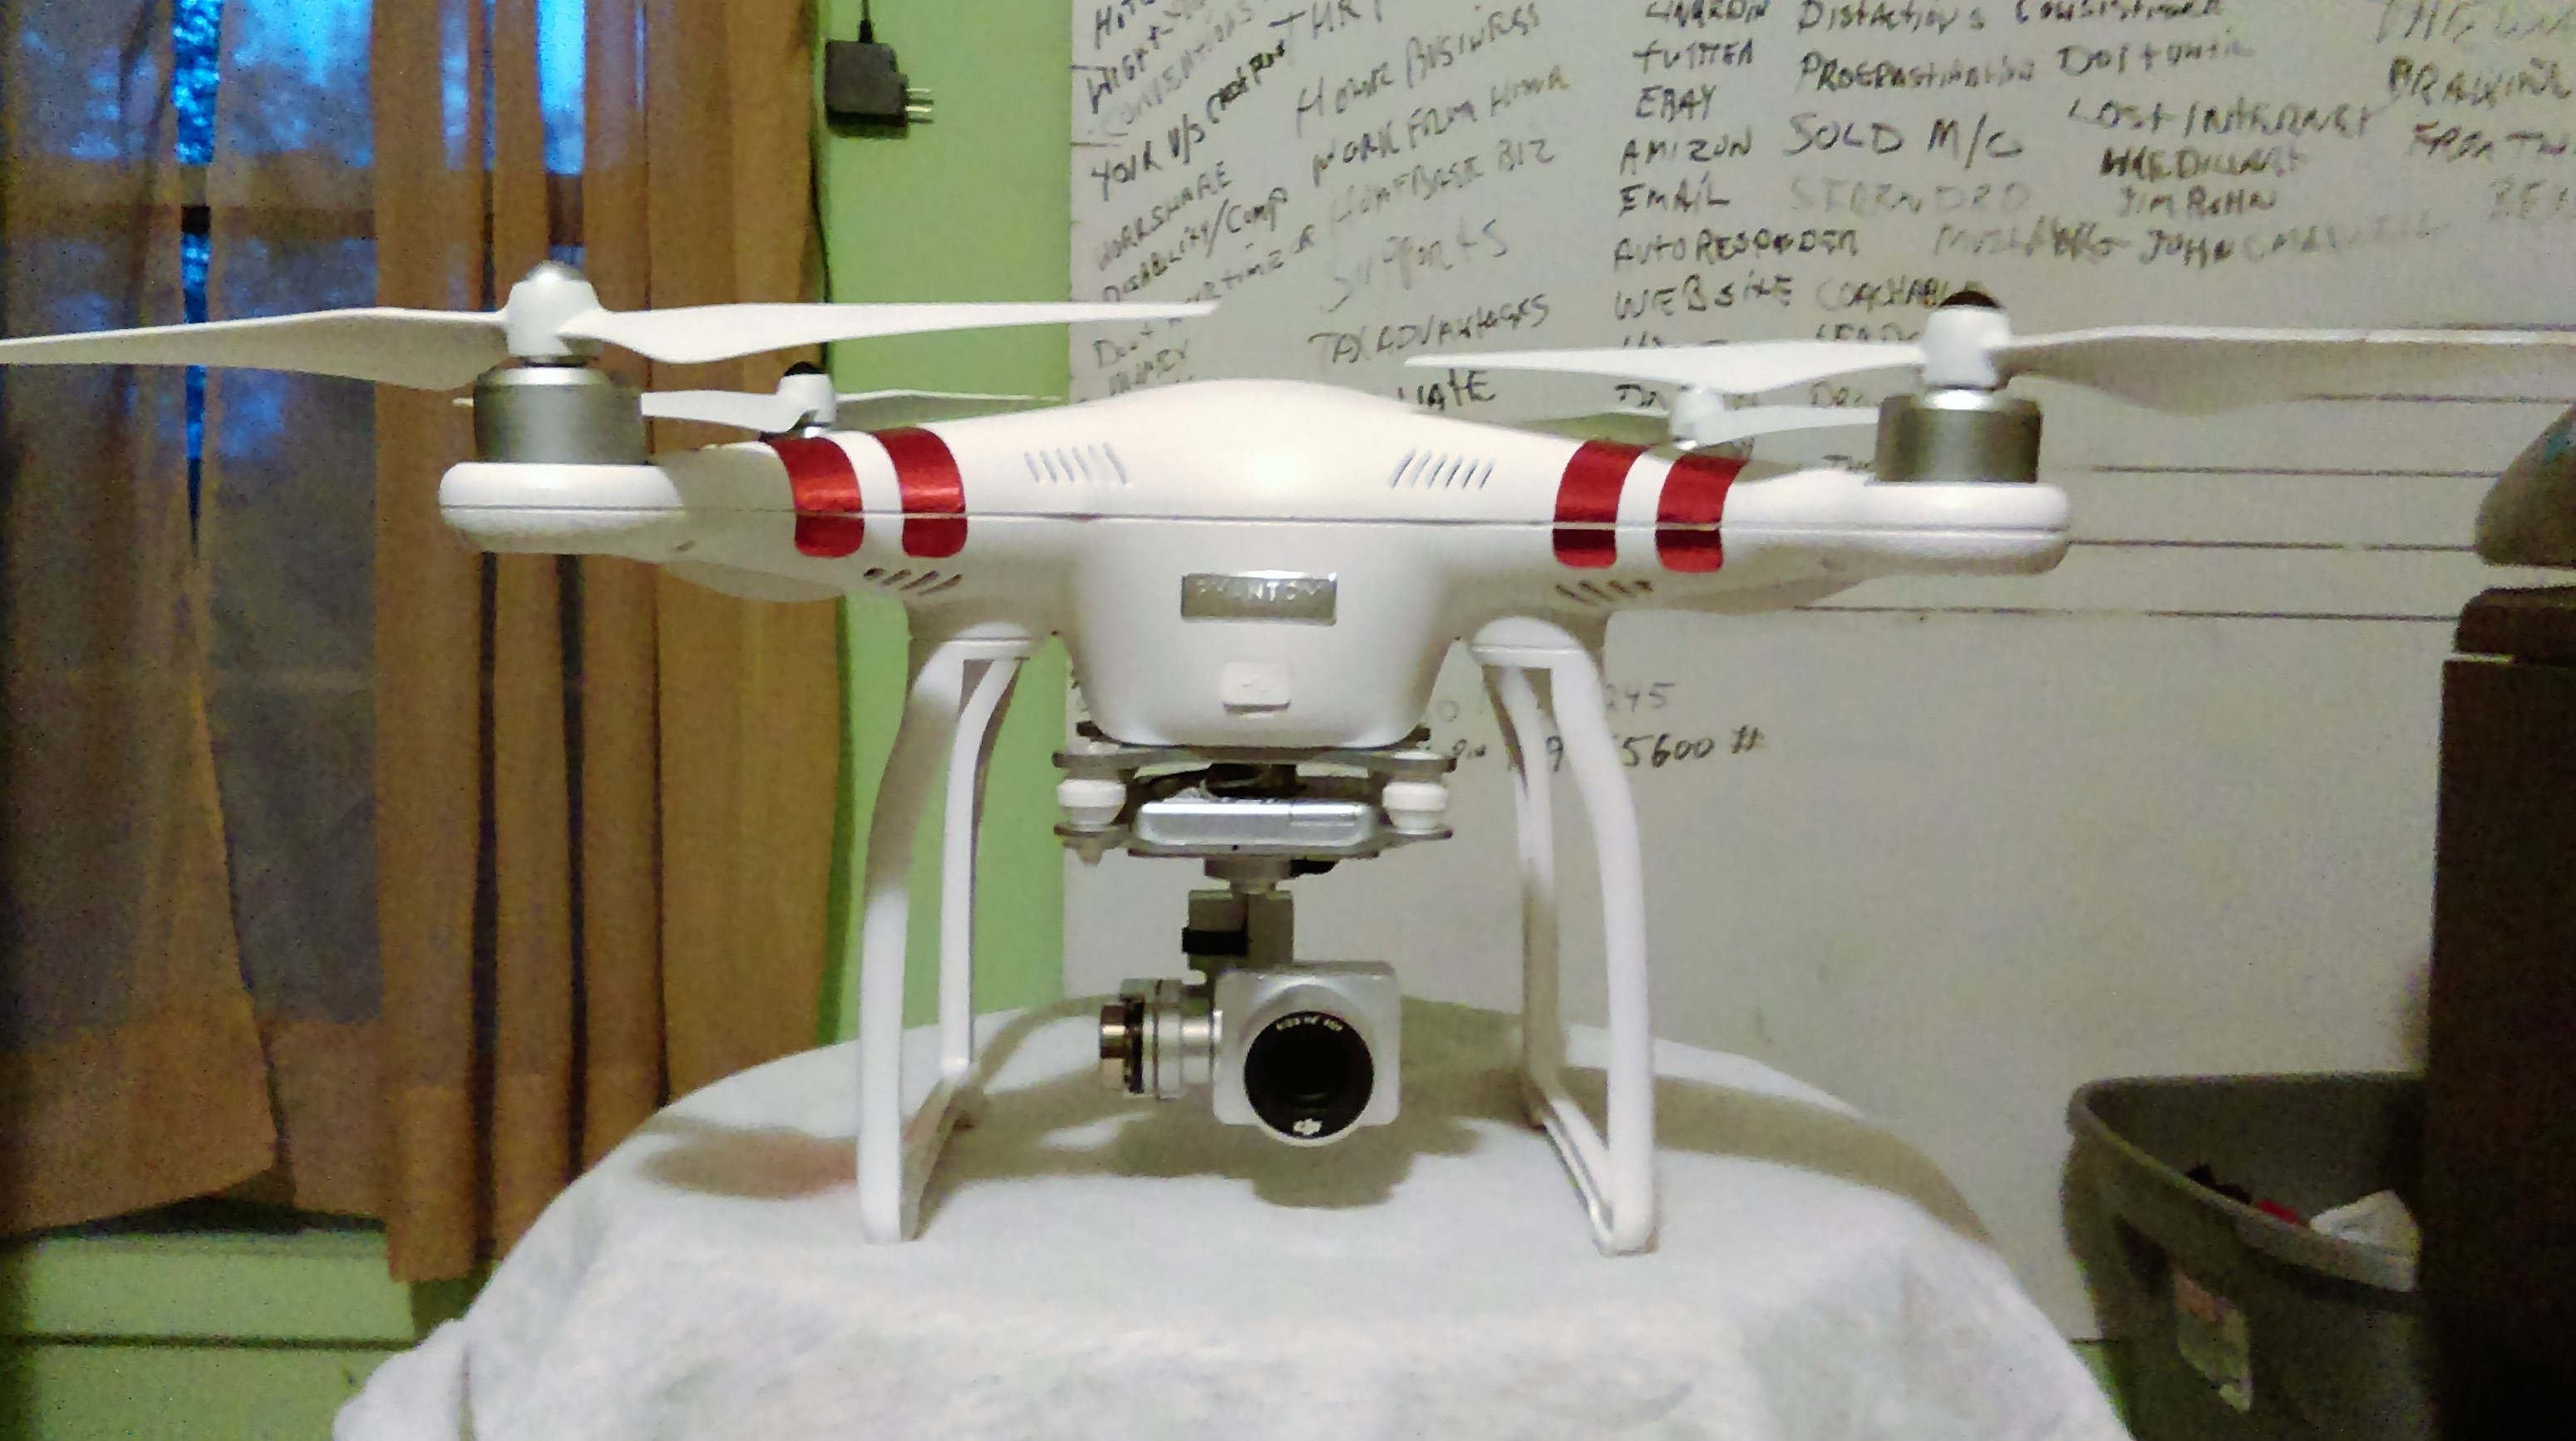 DJI Phantom 3 Episode 3 of the Gimbal Repair